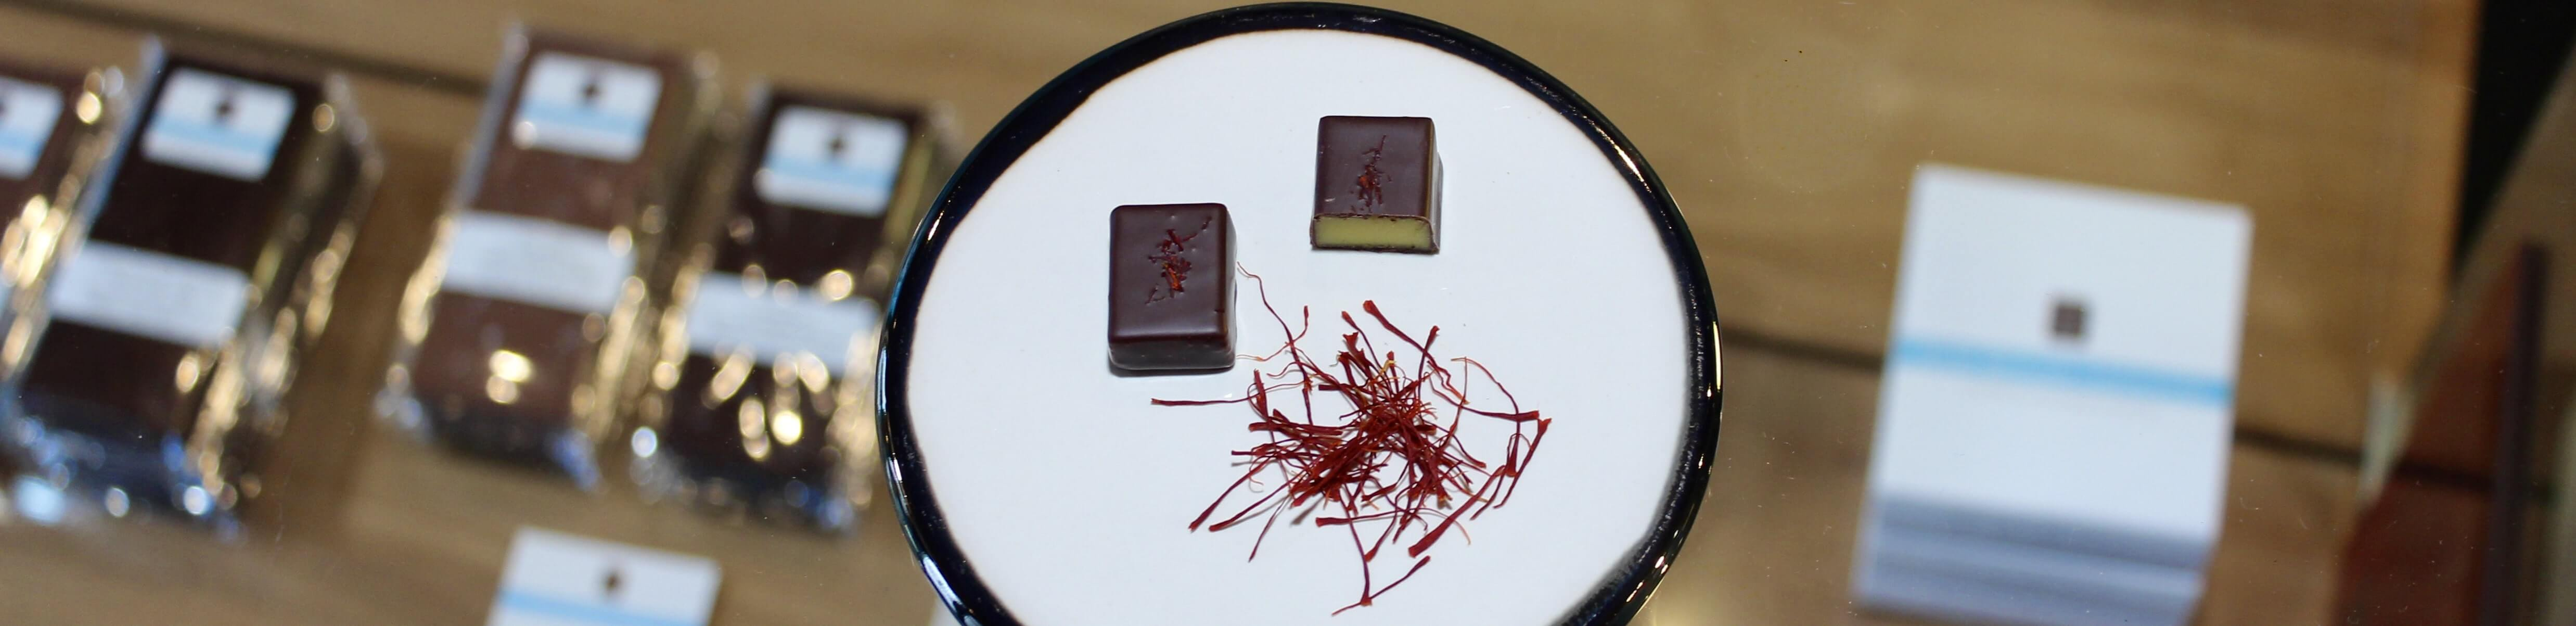 hilde devolder chocolatier chocolate with saffron spring 2020